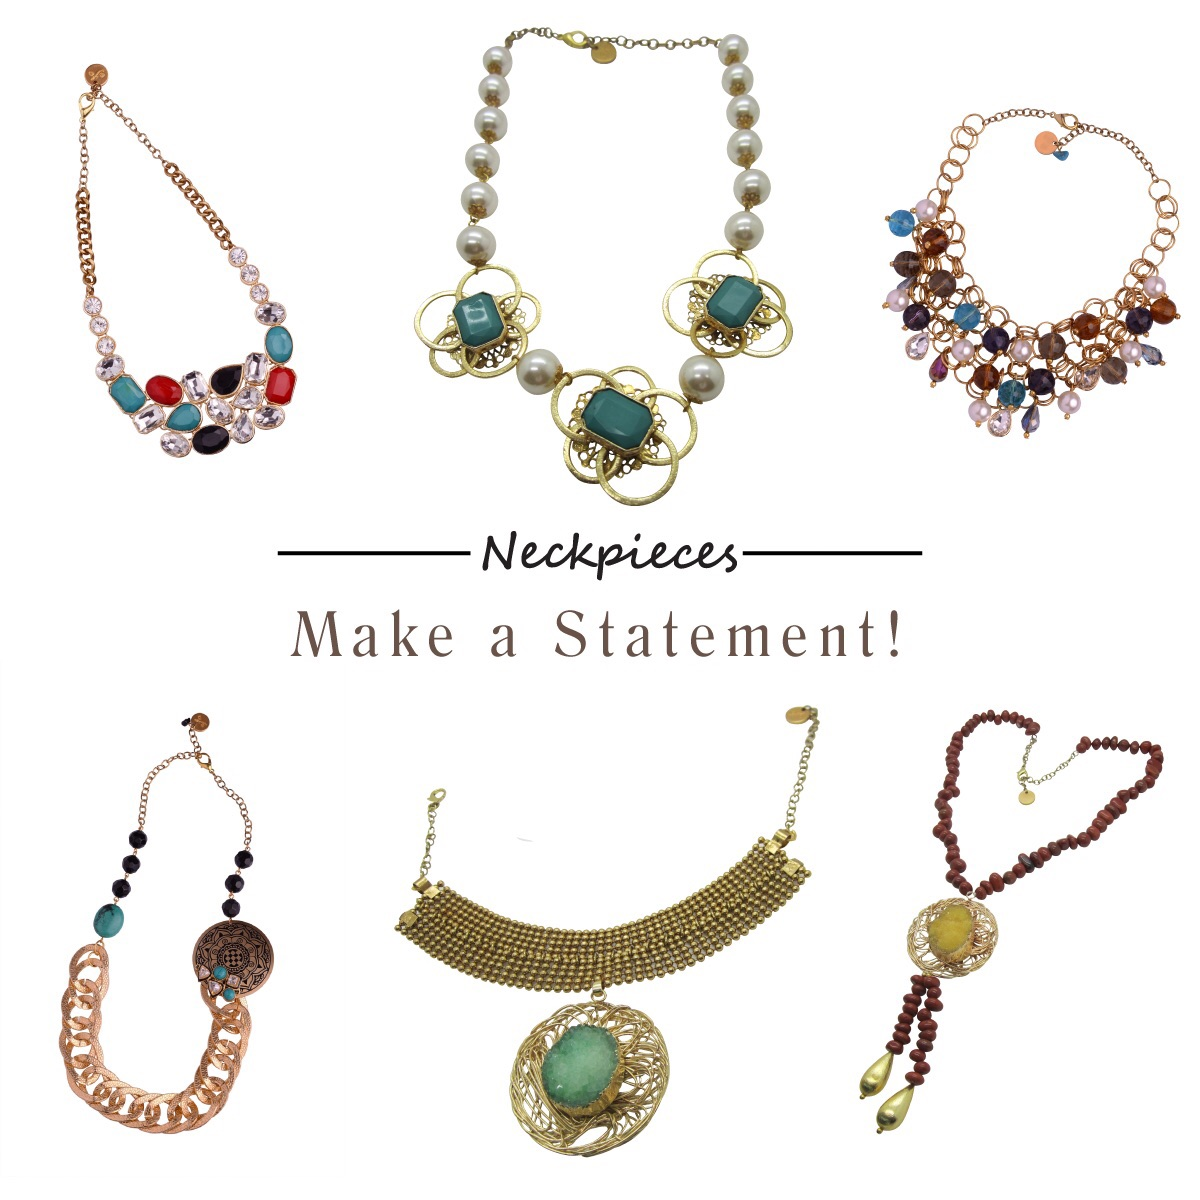 The best of Wear & Accessories at Beyond Gallery